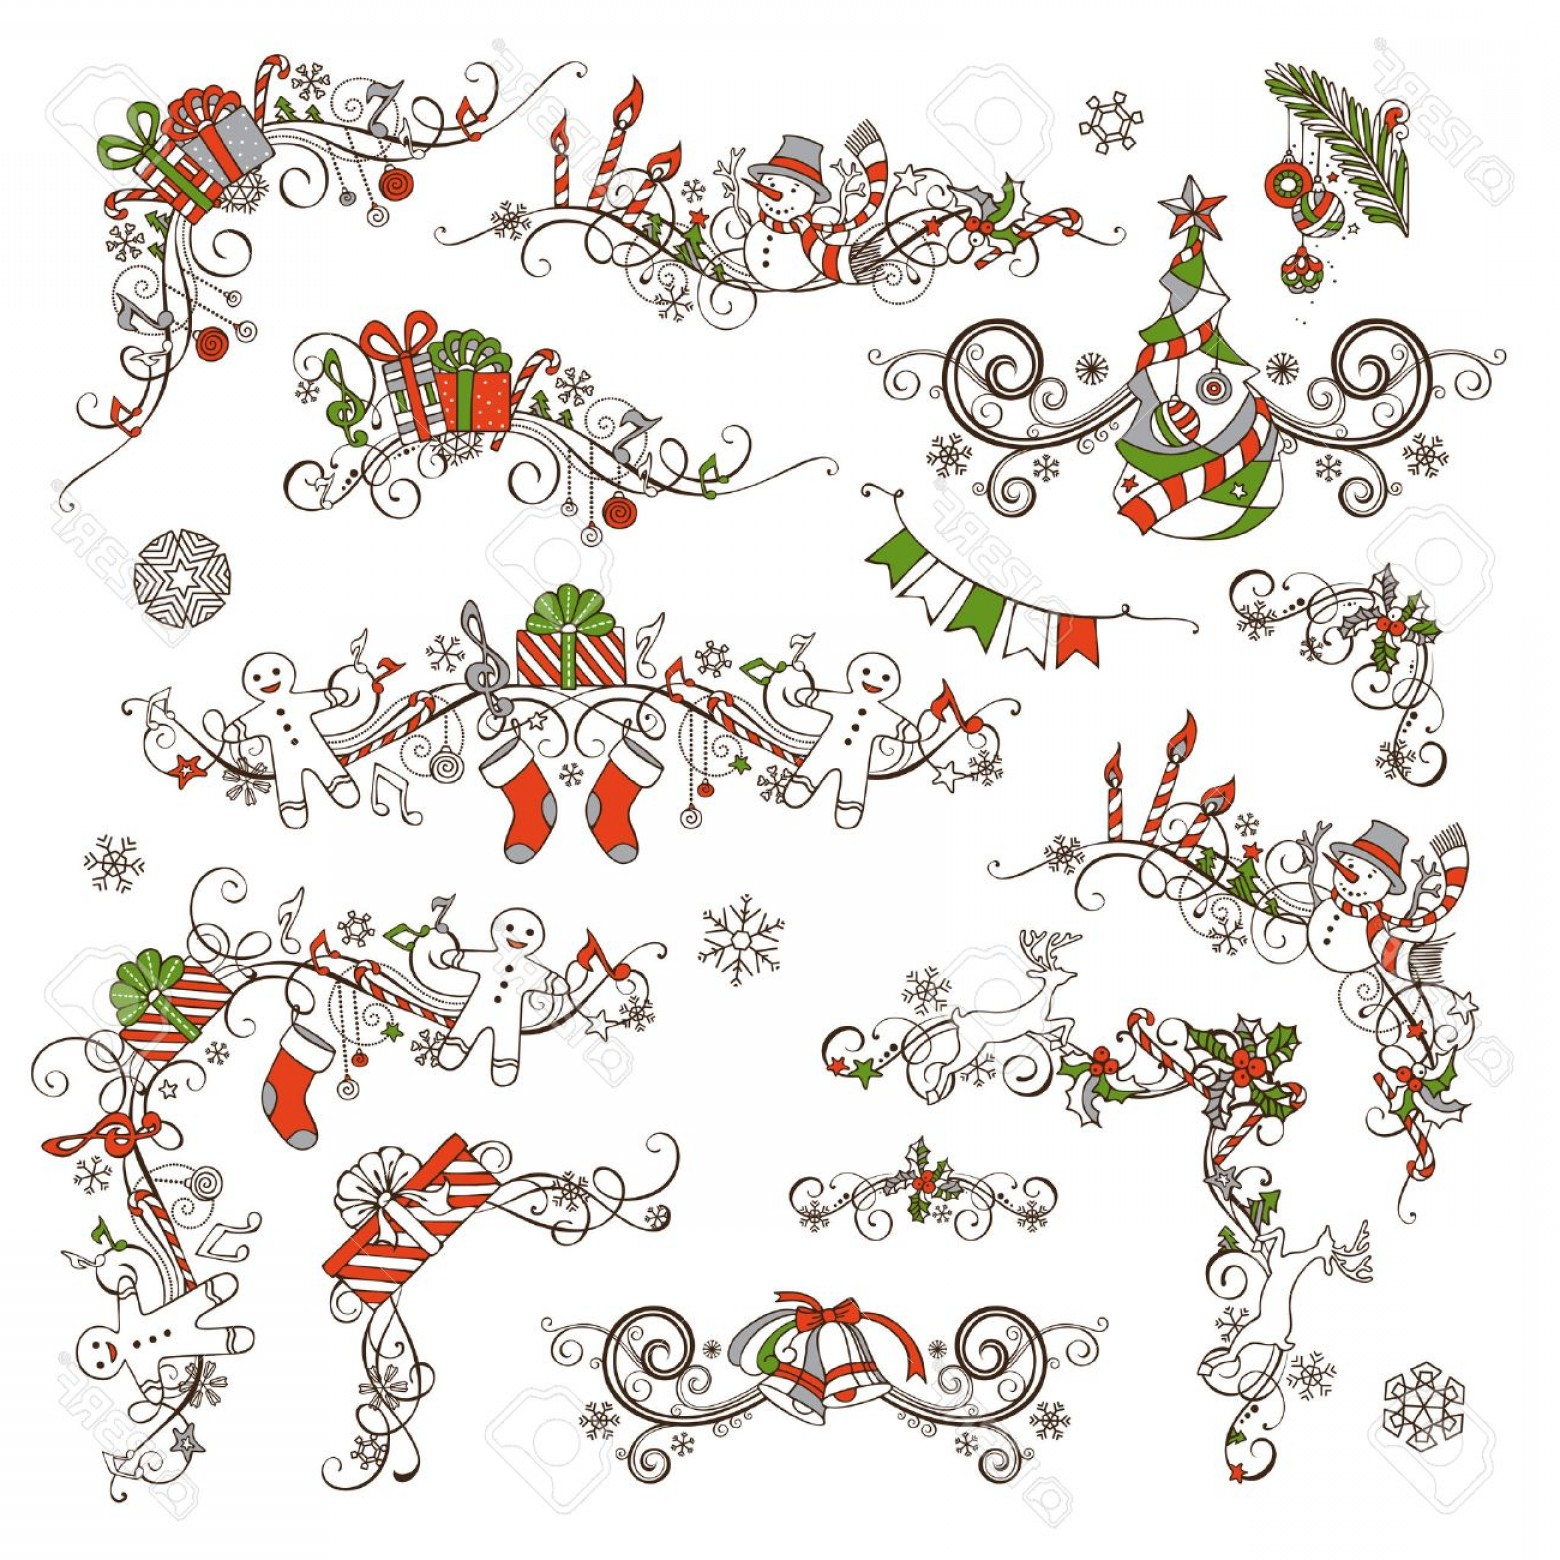 Christmas Divider Vector: Photostock Vector Christmas Calligraphic Page Decorations And Dividers Vector Set For Your Holiday Layout Christmas Tr